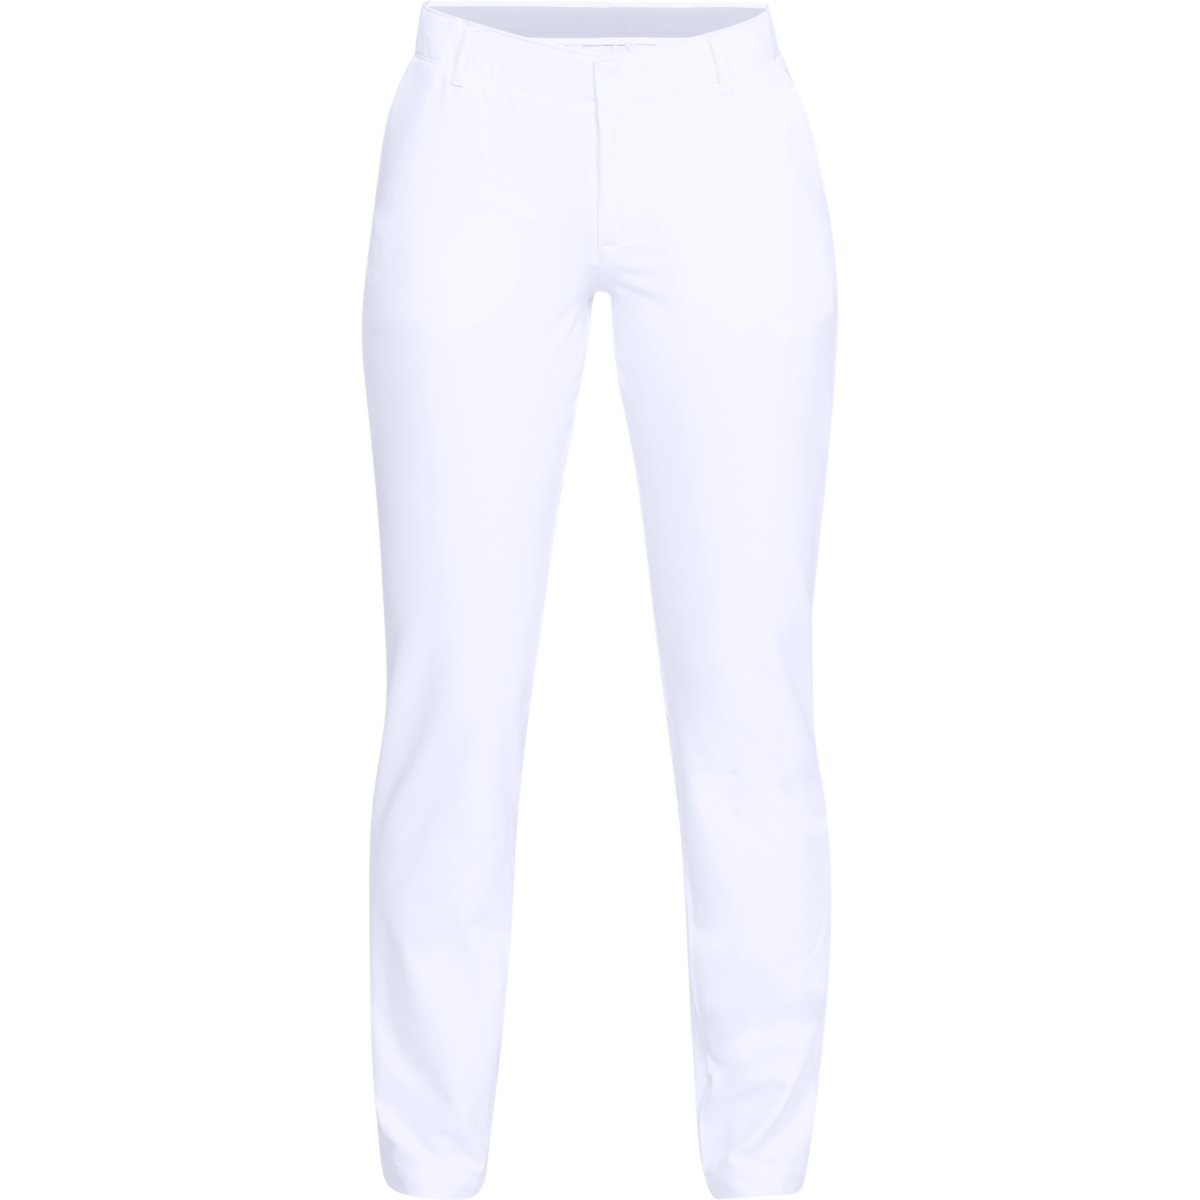 Under Armour Links Pant White - 8